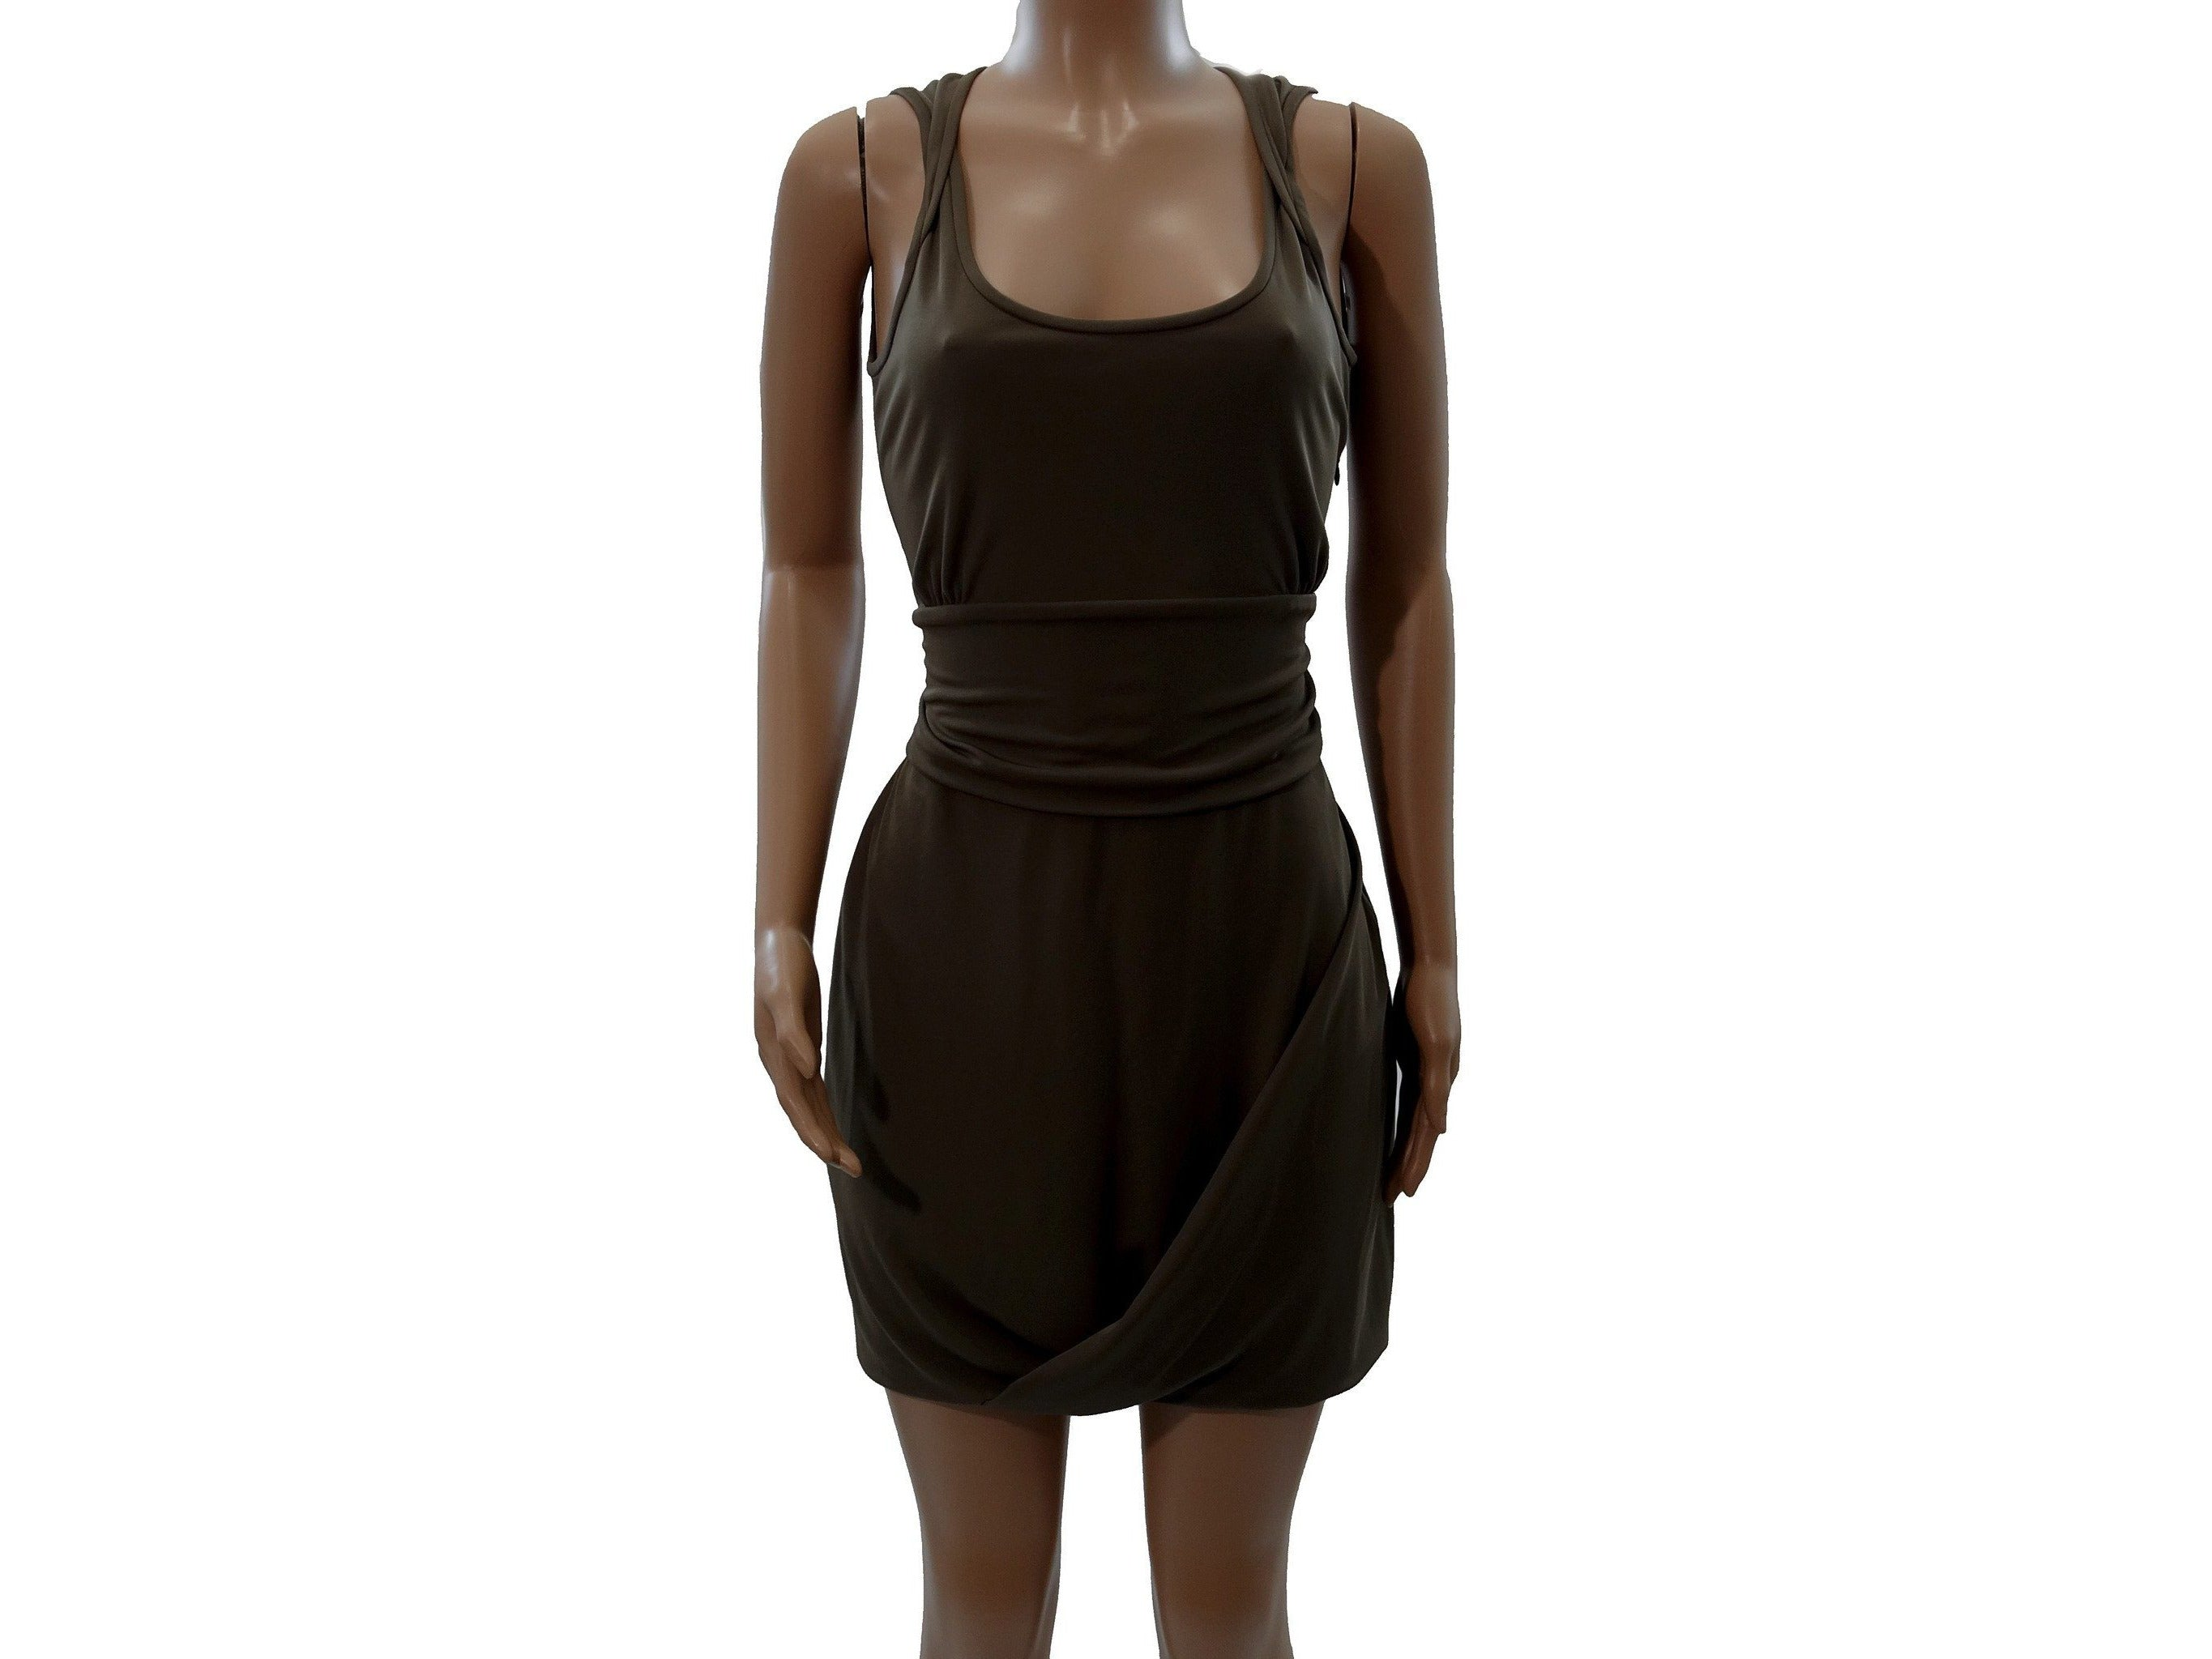 Richard Chai Love (Large) Size 12 NEW - New4Her